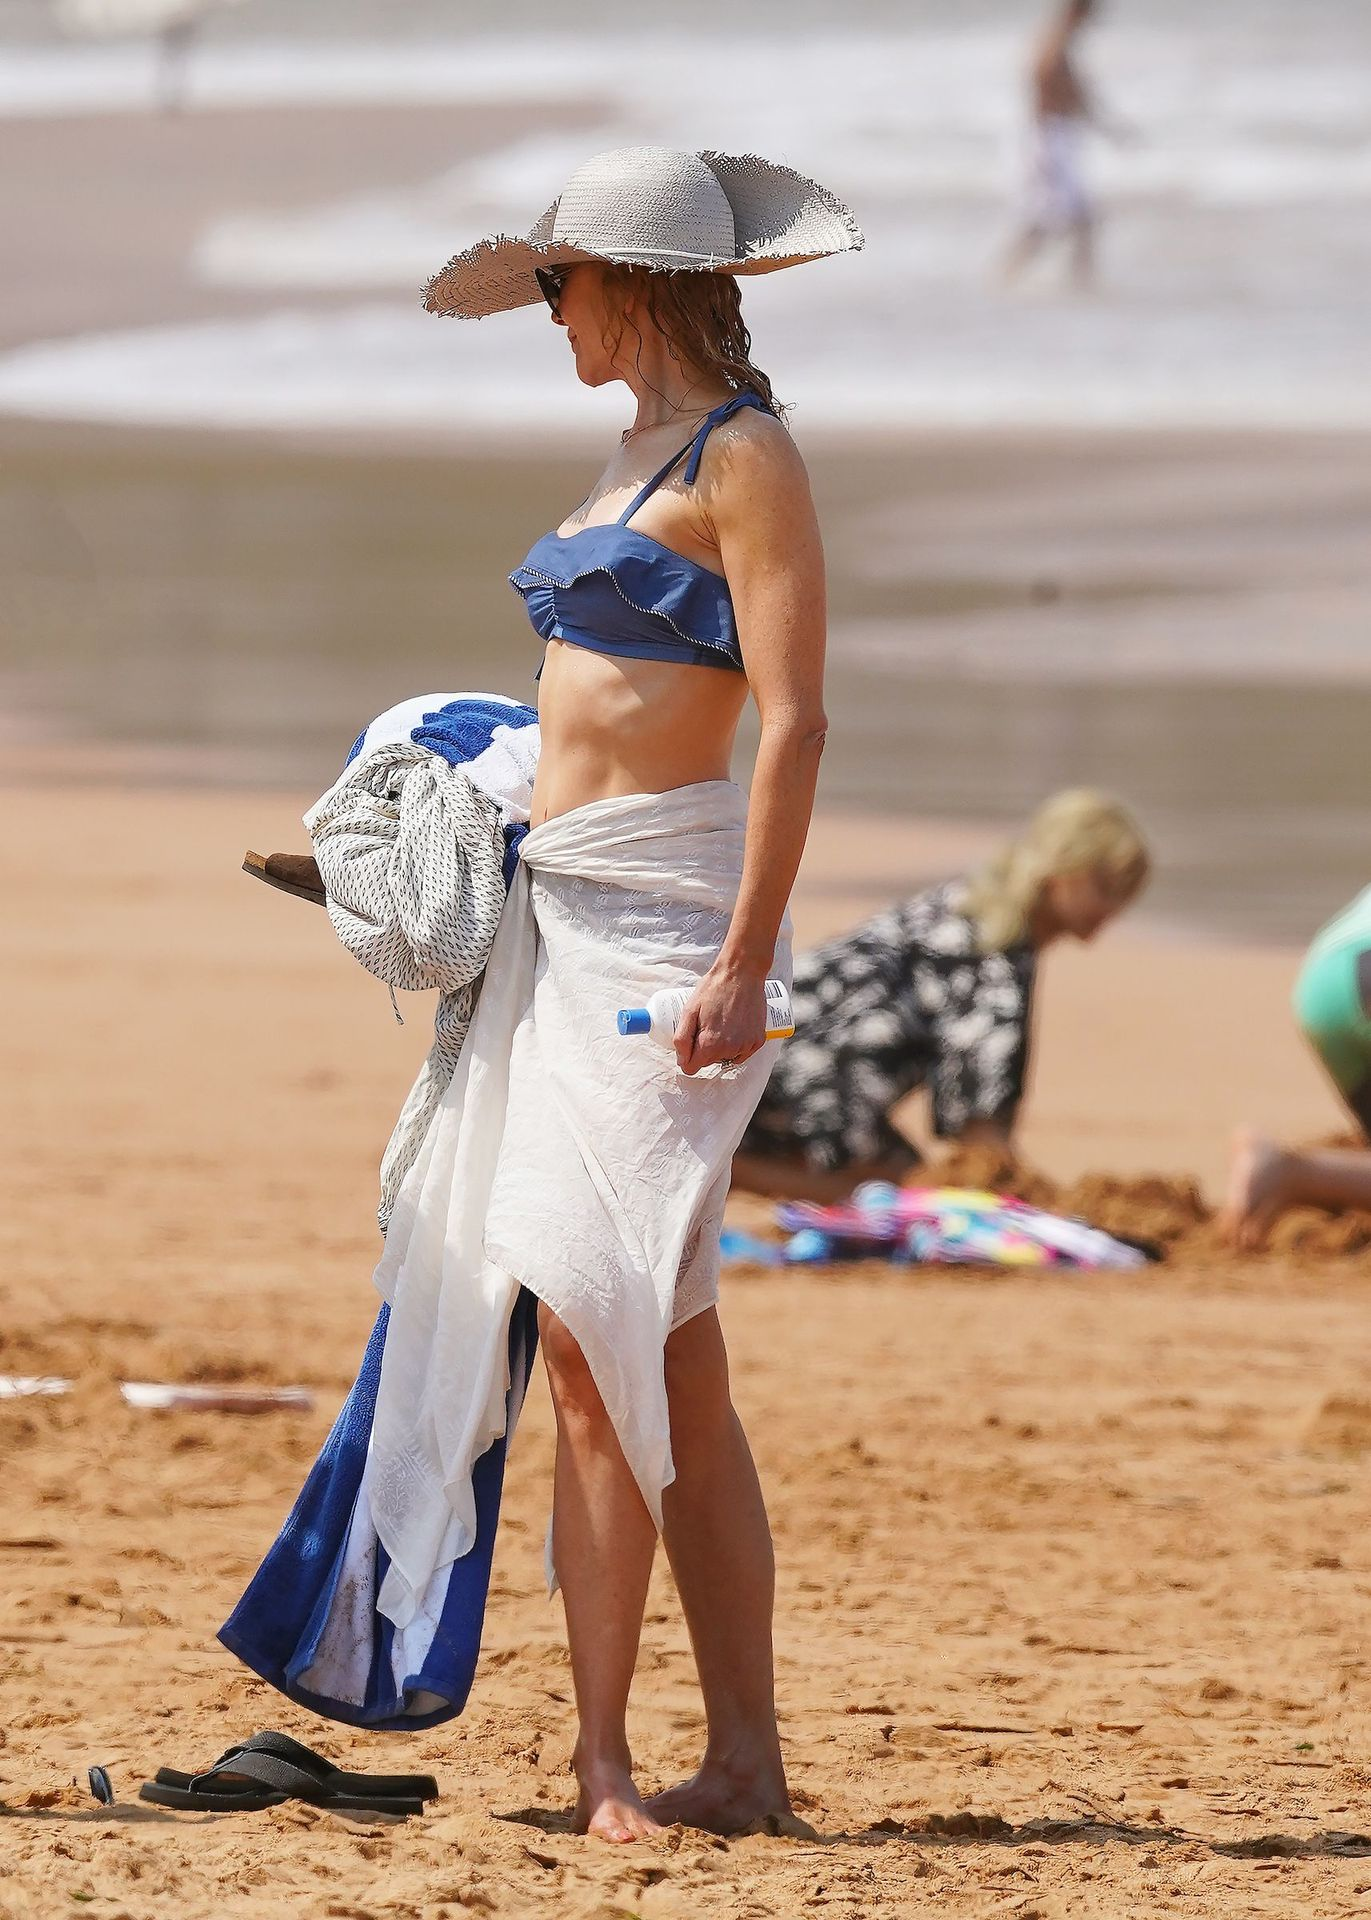 Nicole Kidman Hits The Beach While In Sydney With Her Family 0090